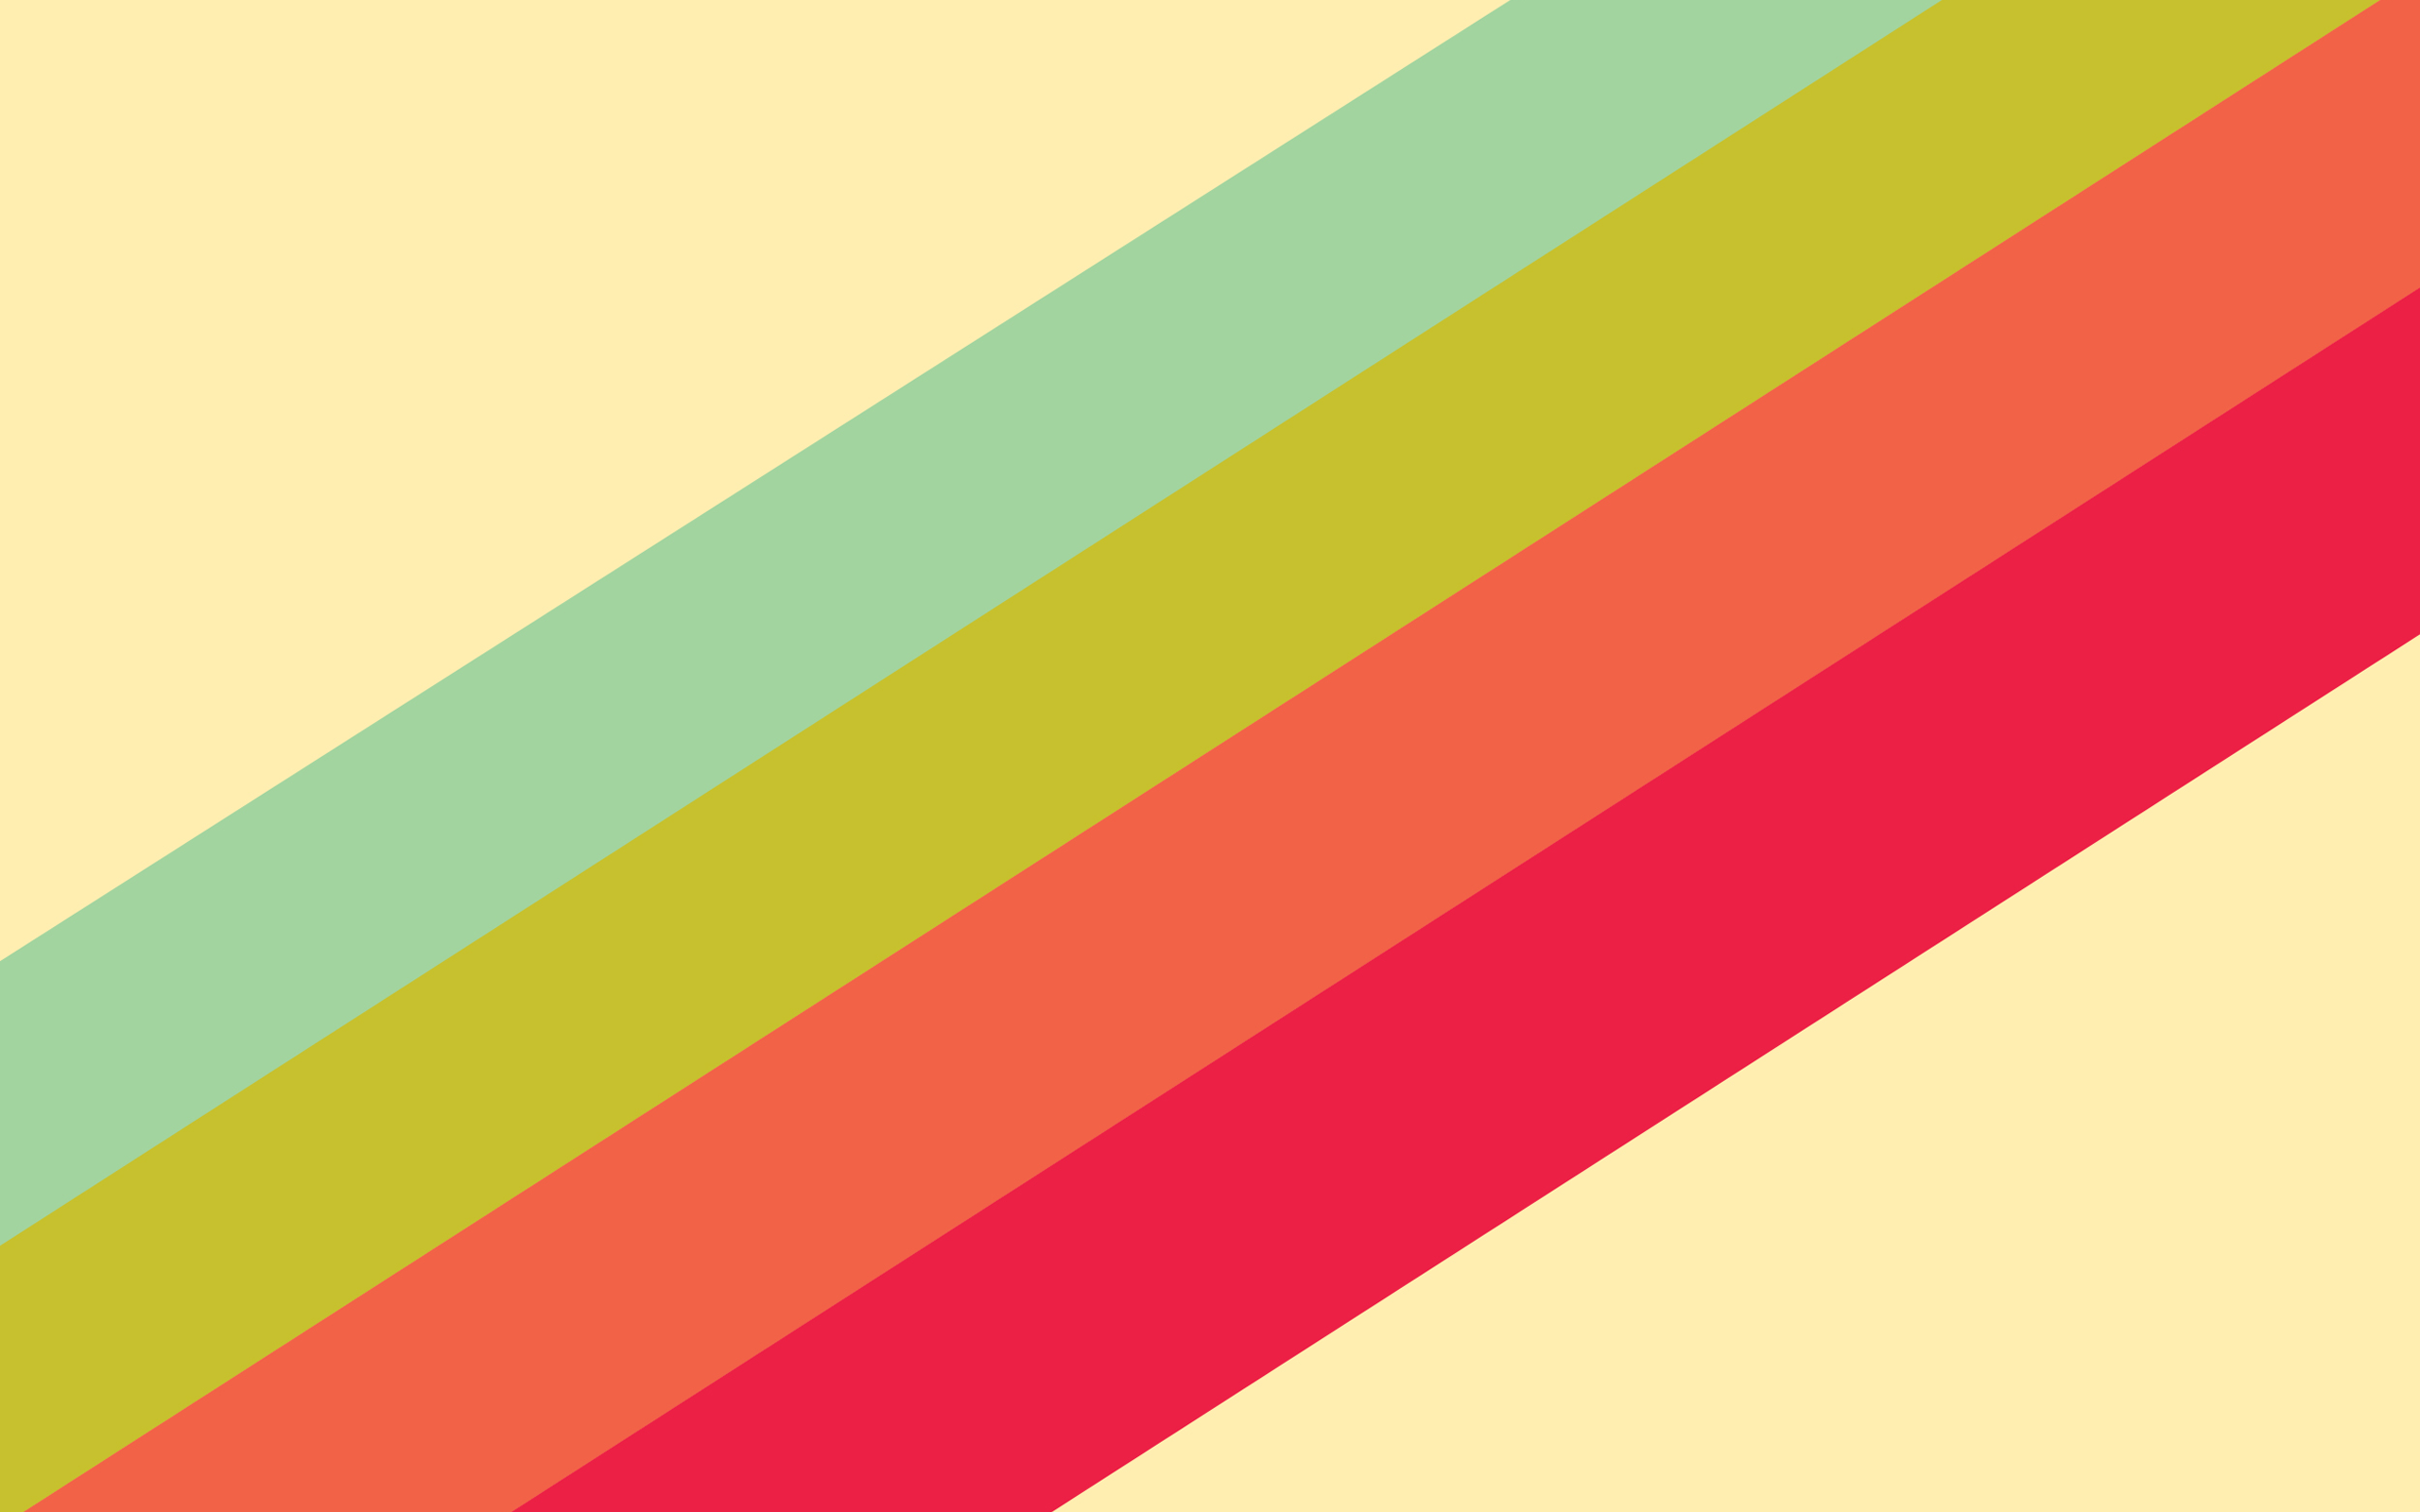 Simple Desktops but Im currently using one called Colour by Fedor 2560x1600